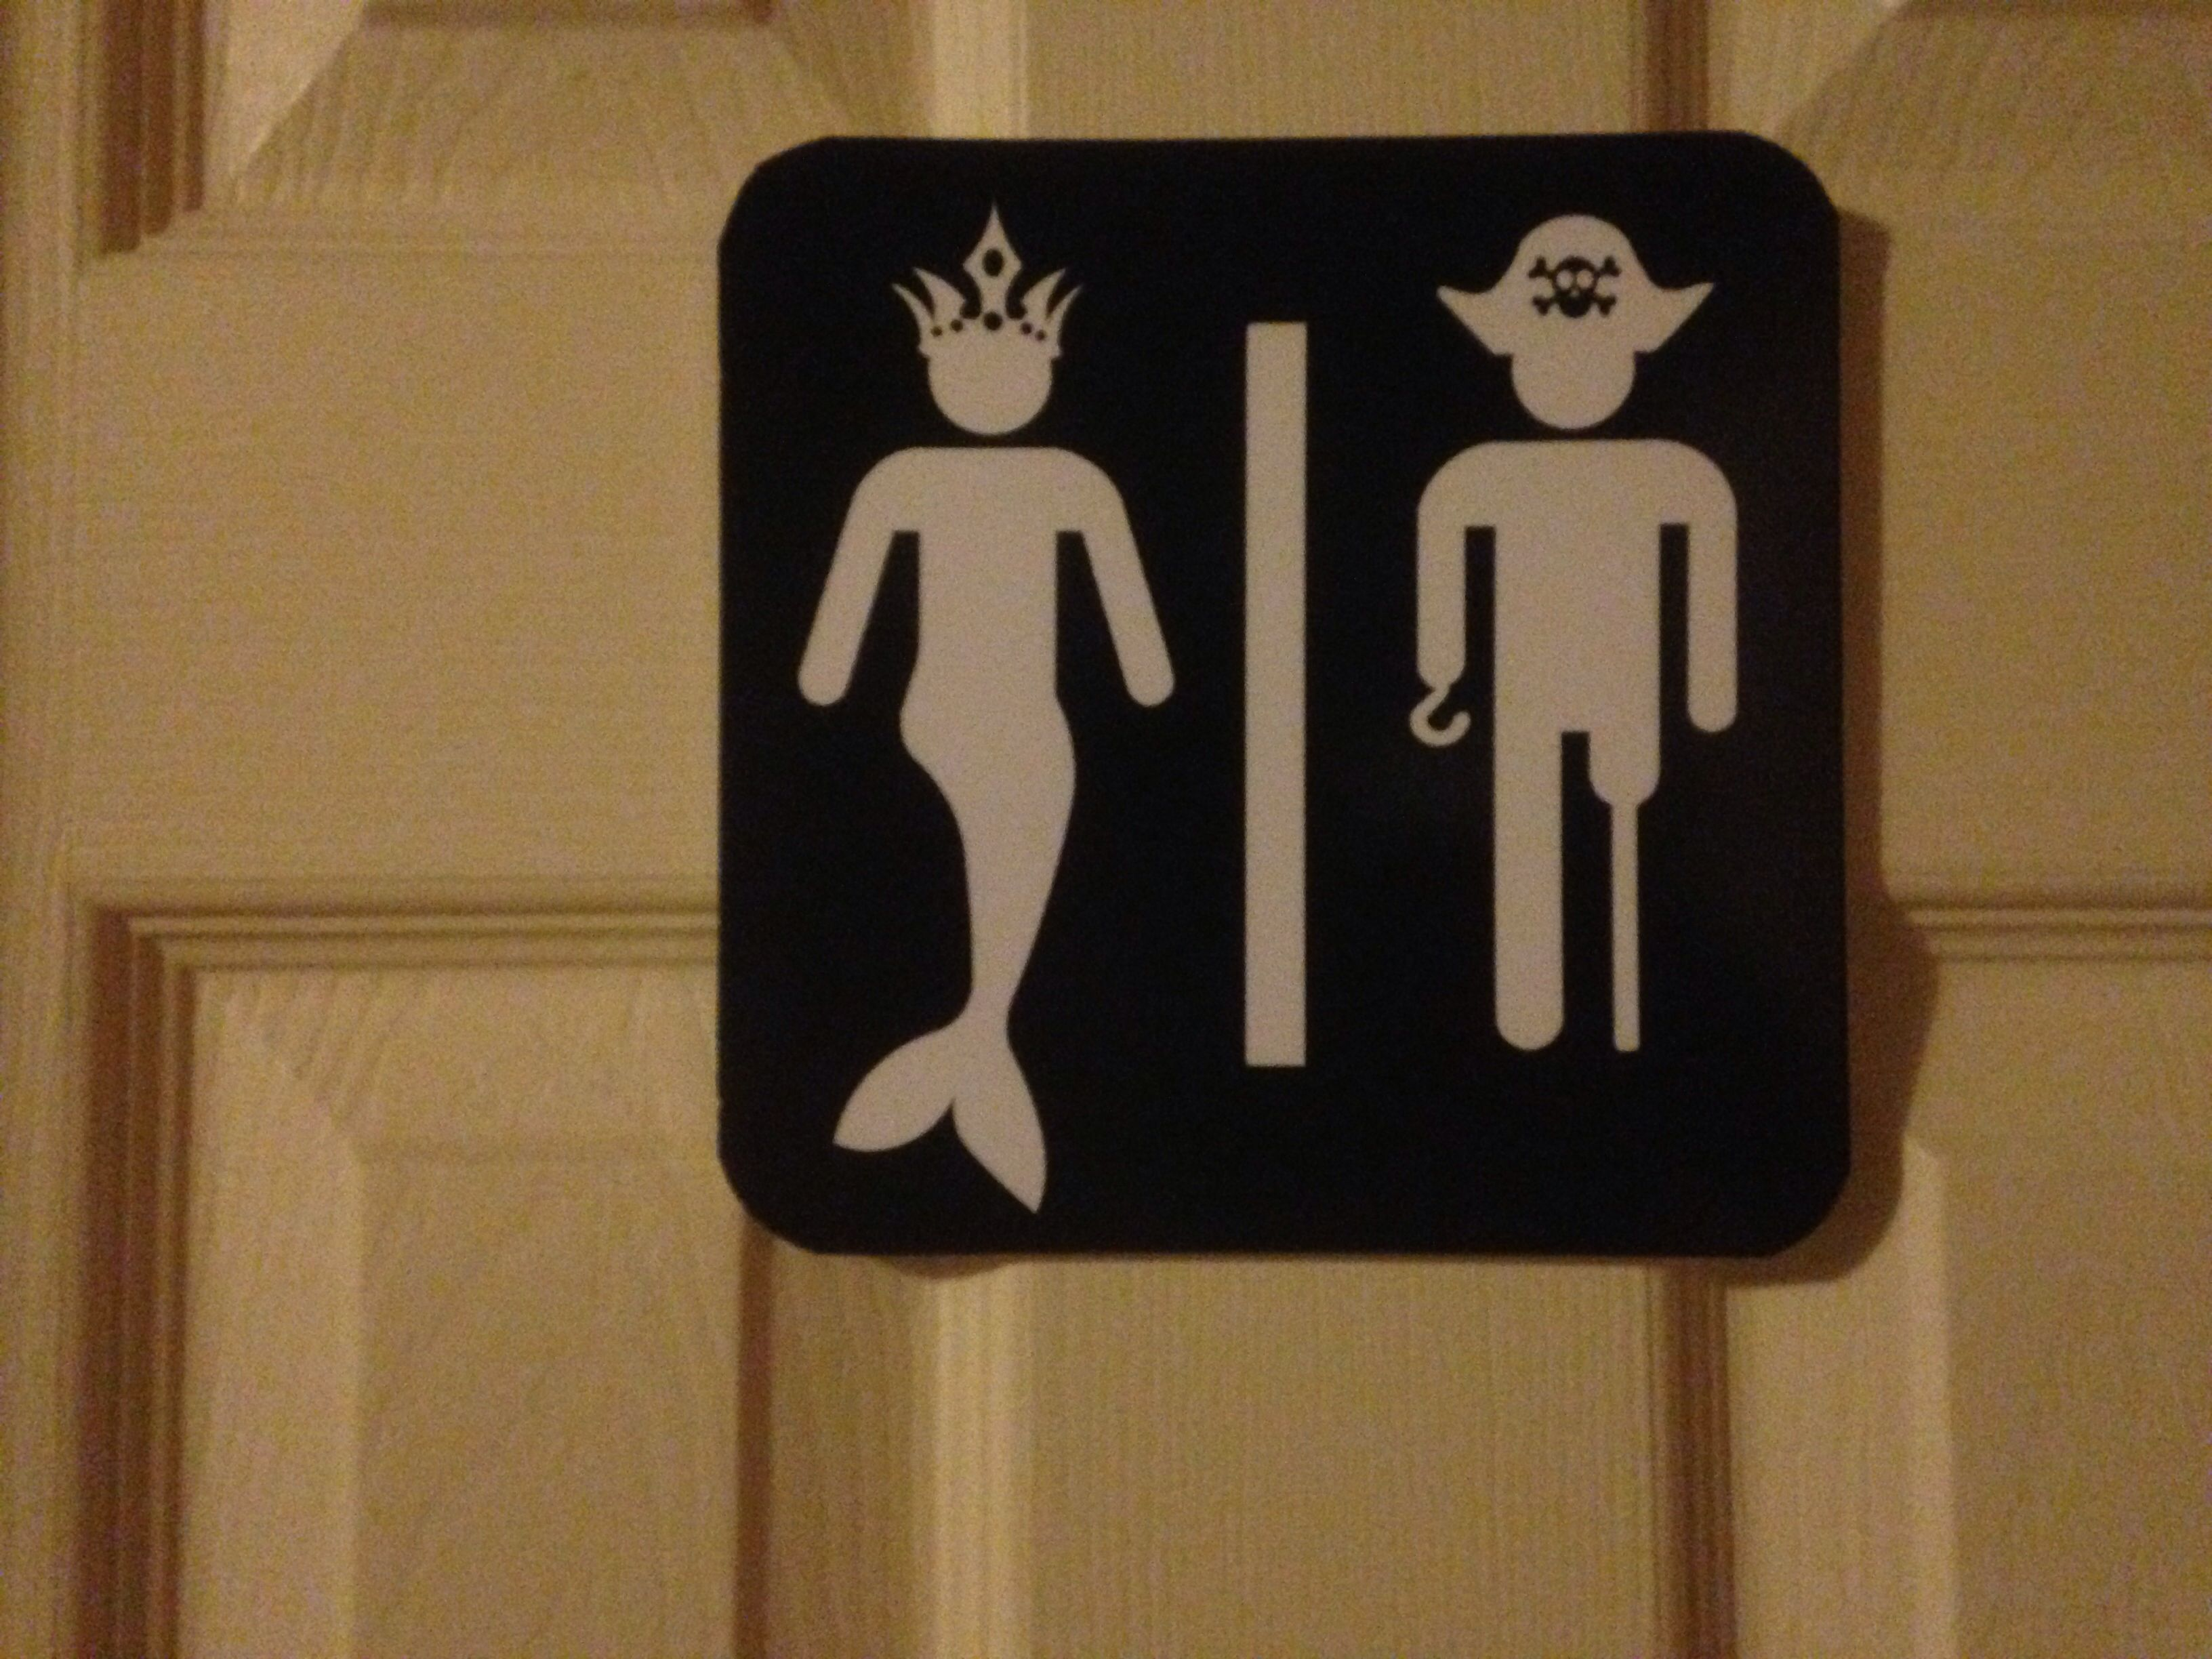 Nautical Themed Bathroom Sign. Mermaid And Pirate.  Www.facebook.com/BowSewWrite